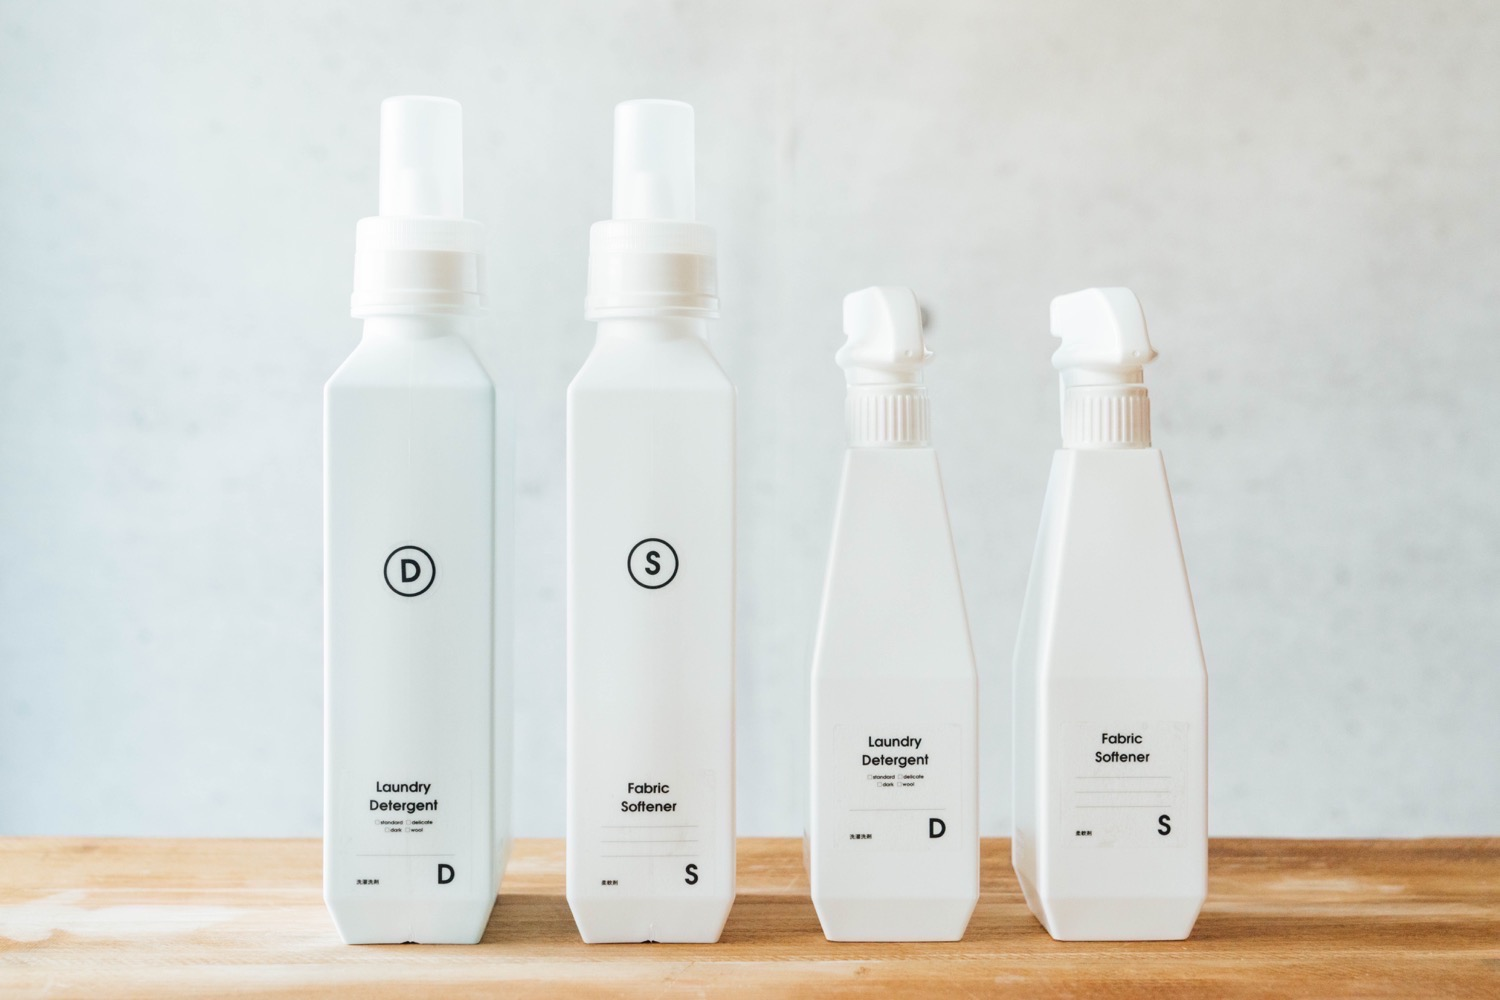 B2c laundry bottle 10